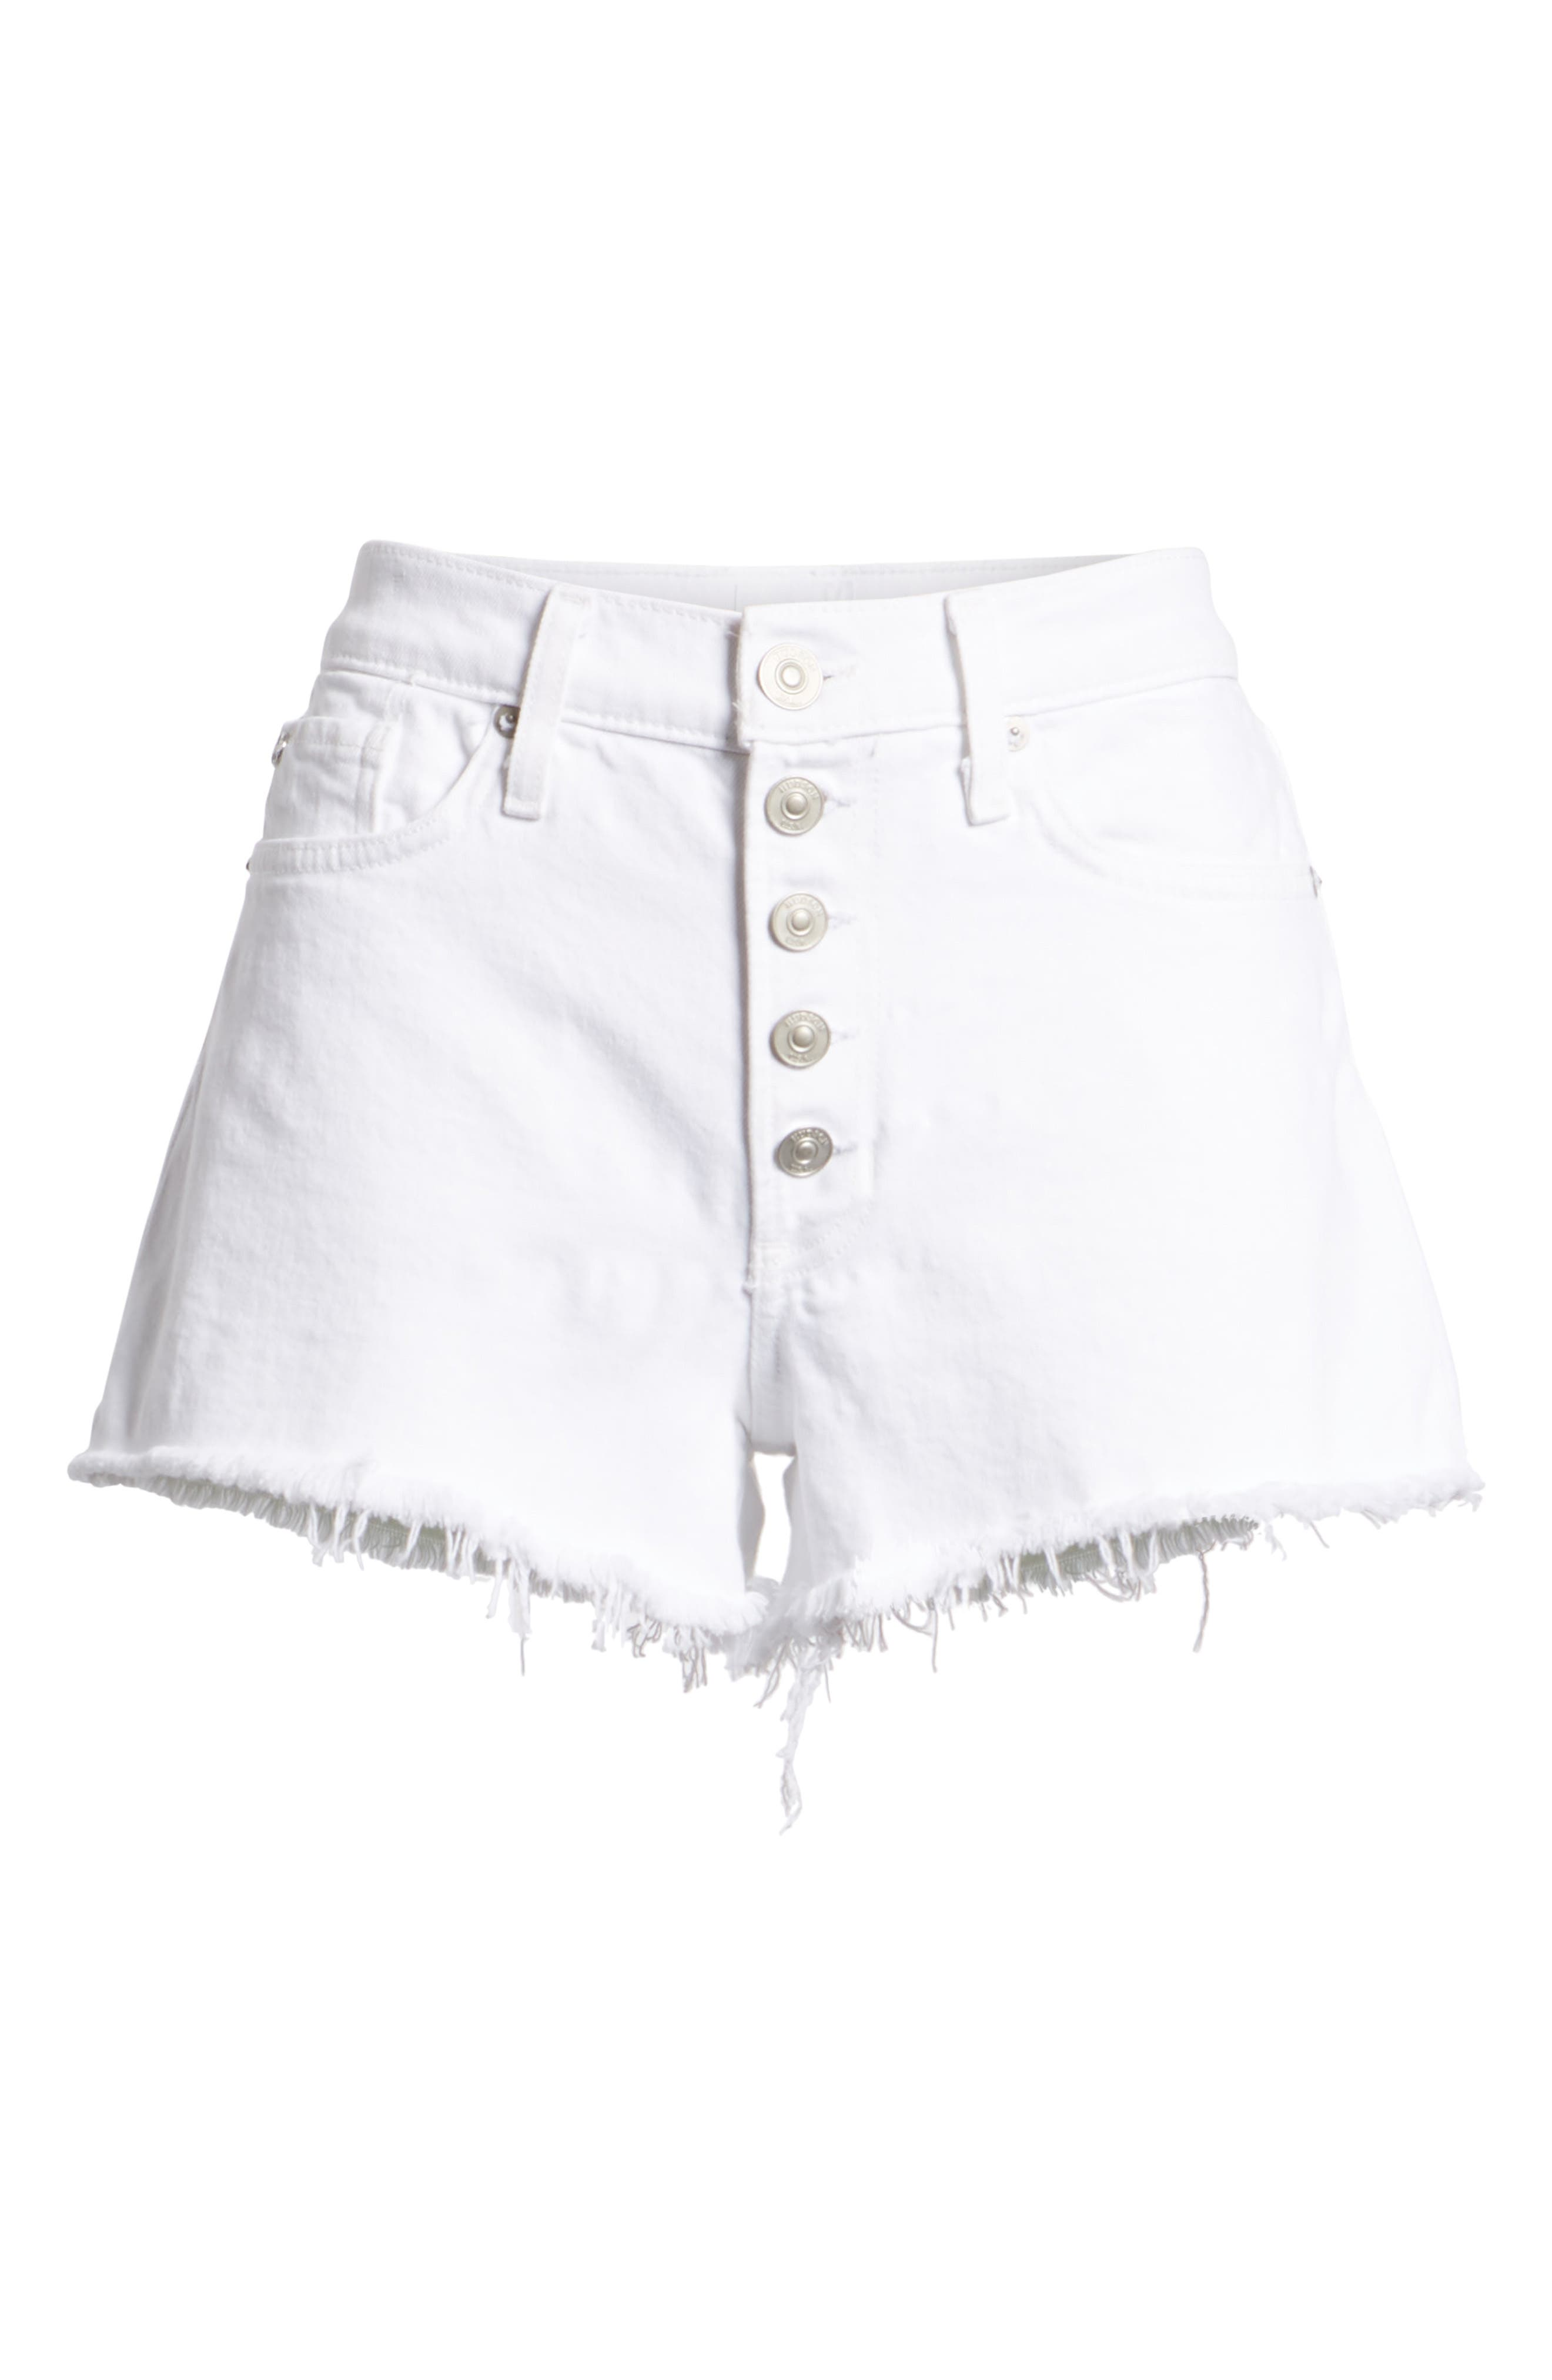 Zoeey Button Fly High Waist Denim Shorts,                             Alternate thumbnail 7, color,                             120